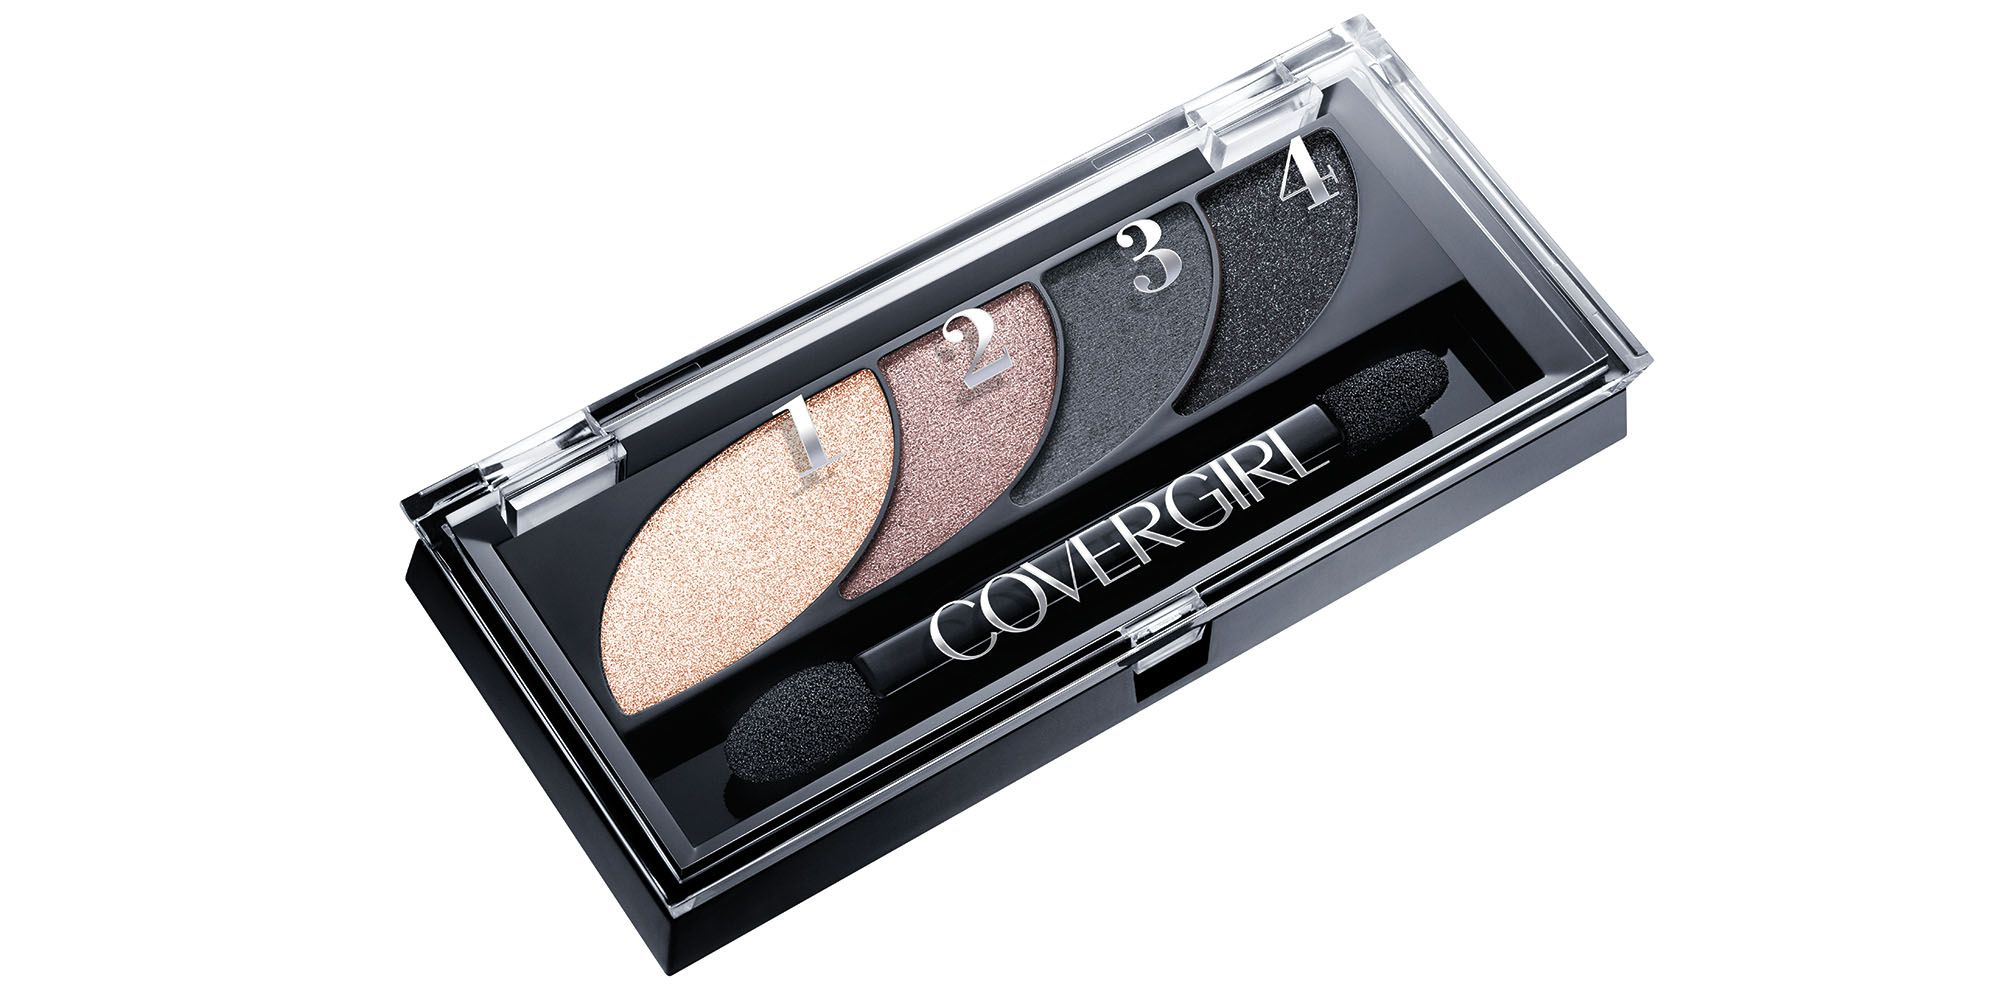 "<p>""The eyes are extremely strong, with a cat shape,"" says Pecheux, who rimmed the lash line with black pencil before blending matte black and gray shadows across the lids.</p><p><strong>CoverGirl</strong> Eye Shadow Quad in Stunning Smokeys, $8, <a href=""http://www.covergirl.com/beauty-products/eye-makeup/eyeshadow/eye-shadow-quad"" target=""_blank"">covergirl.com</a>.</p>"